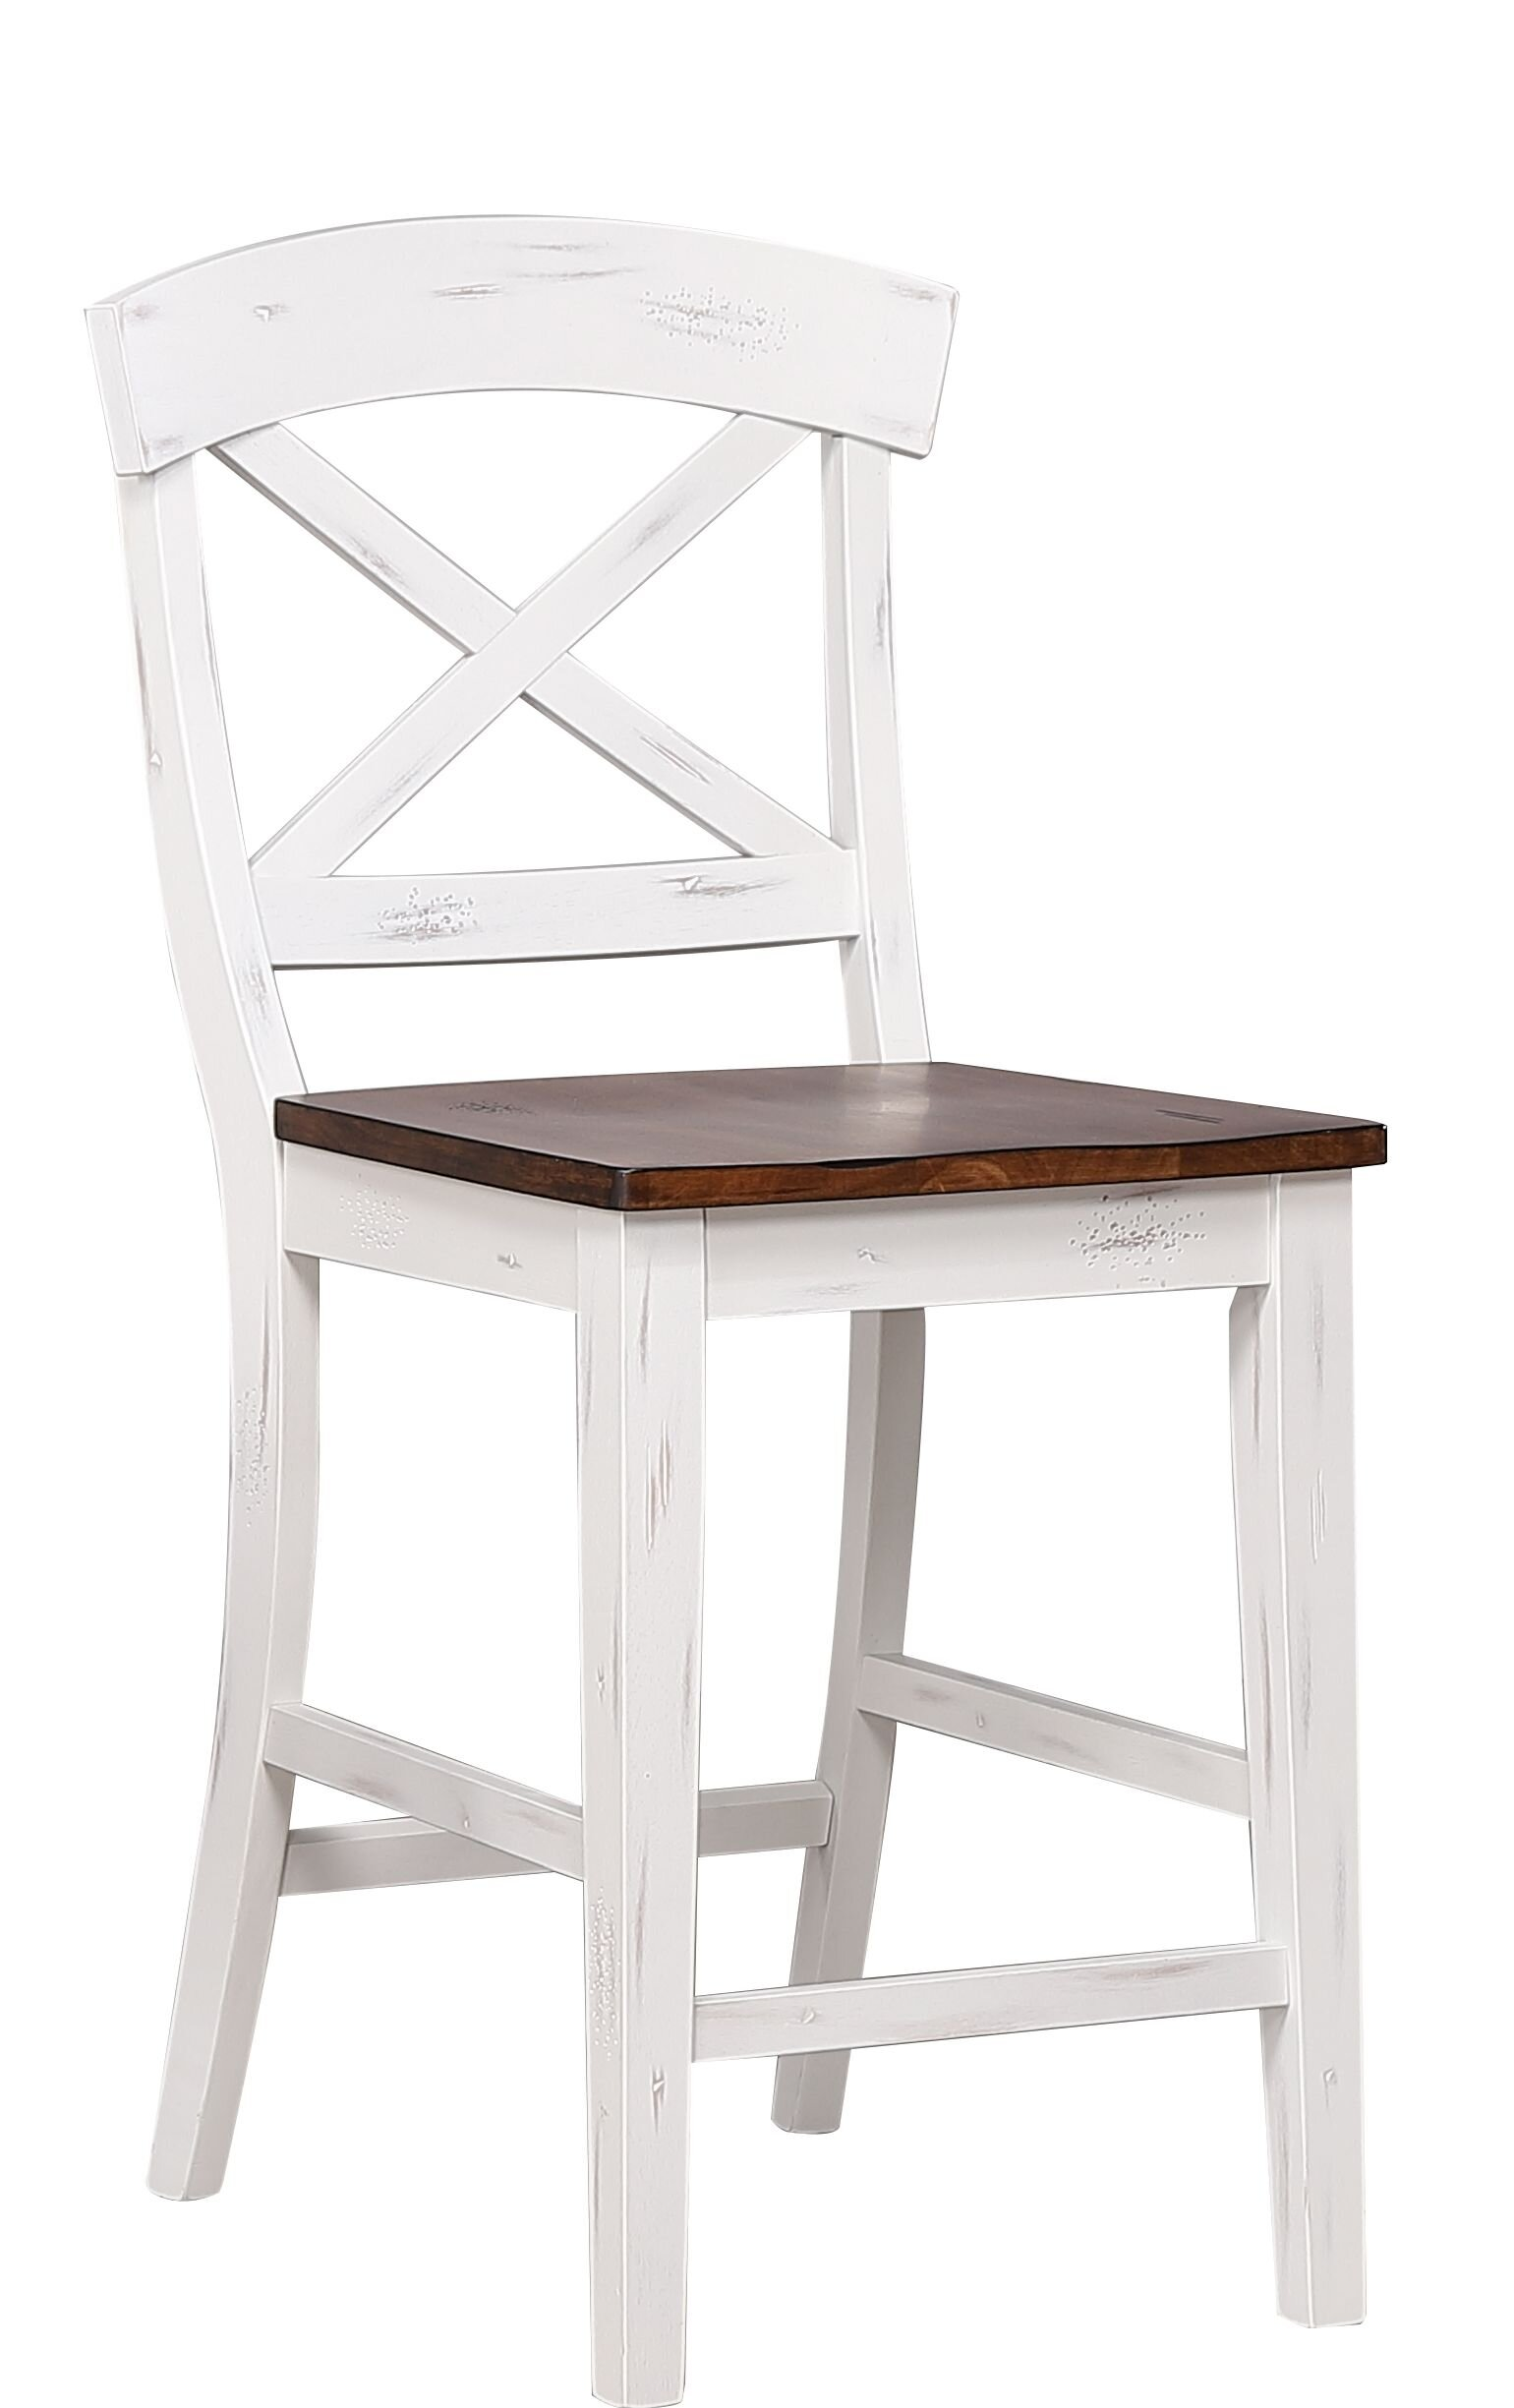 "Transitional X-Back 24"" Counter Stool In Distressed Cotton White/ Cocoa Brown"